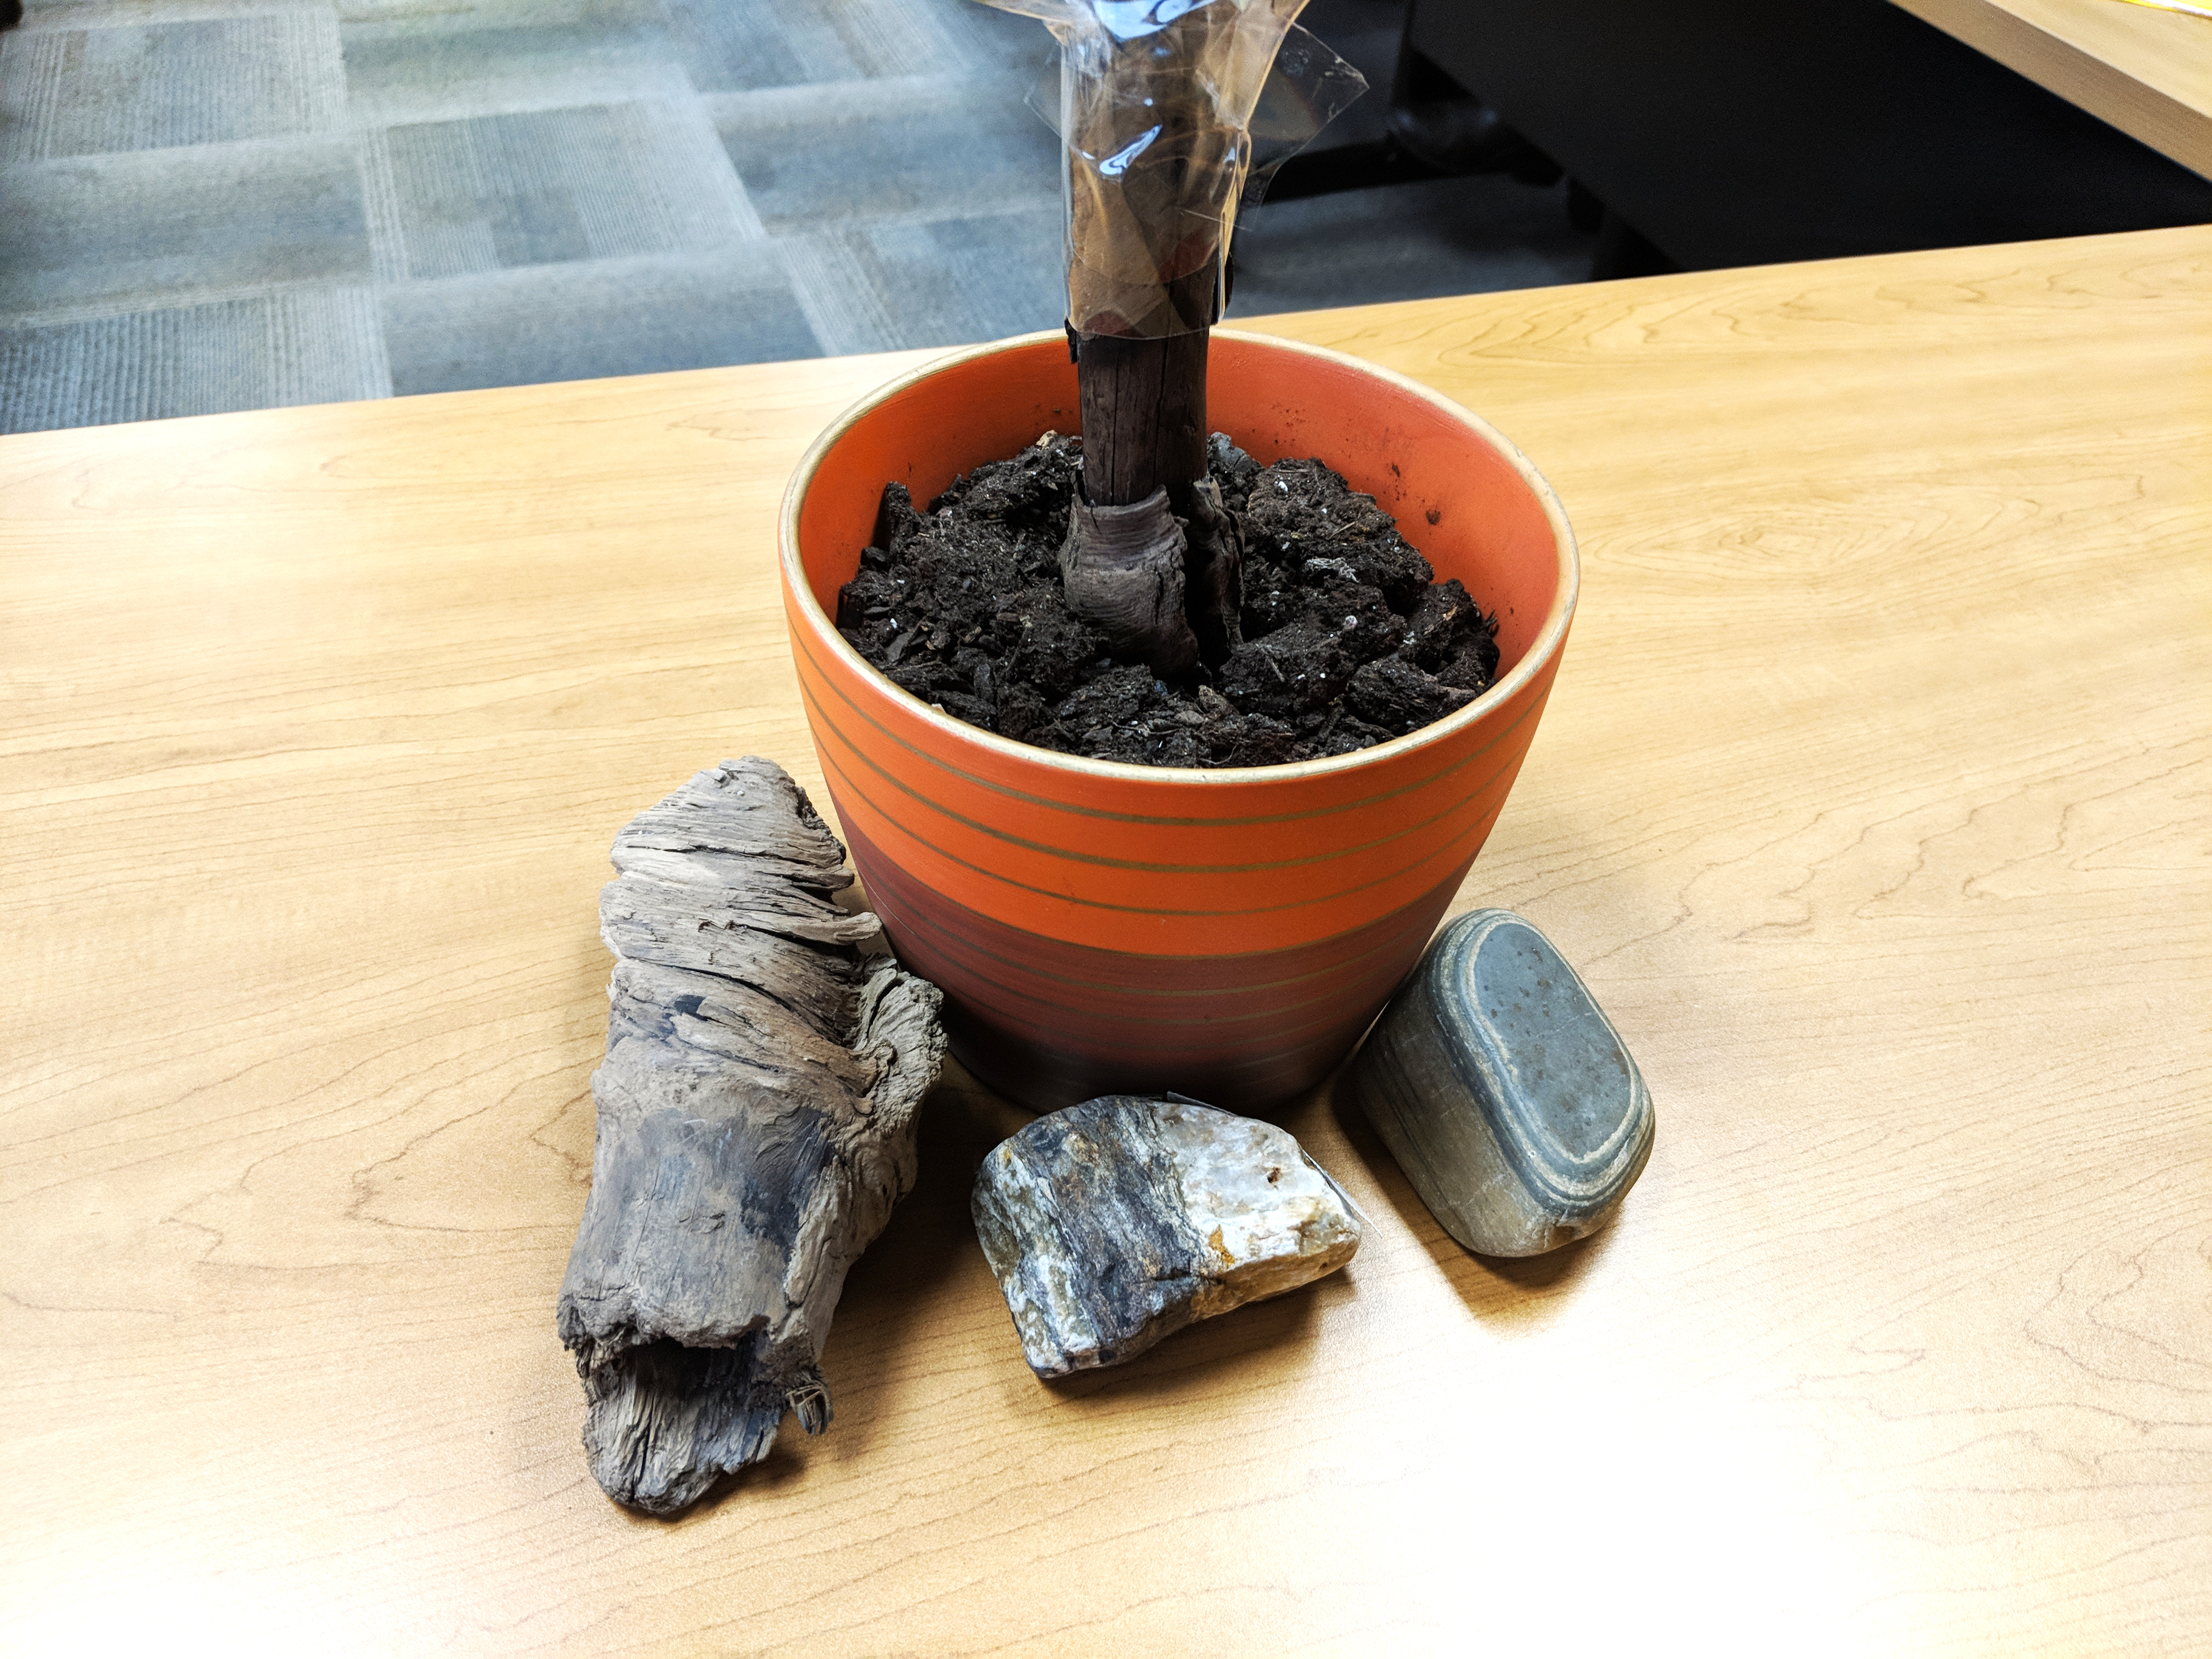 two rocks and two sticks used in a teambuilding exercize